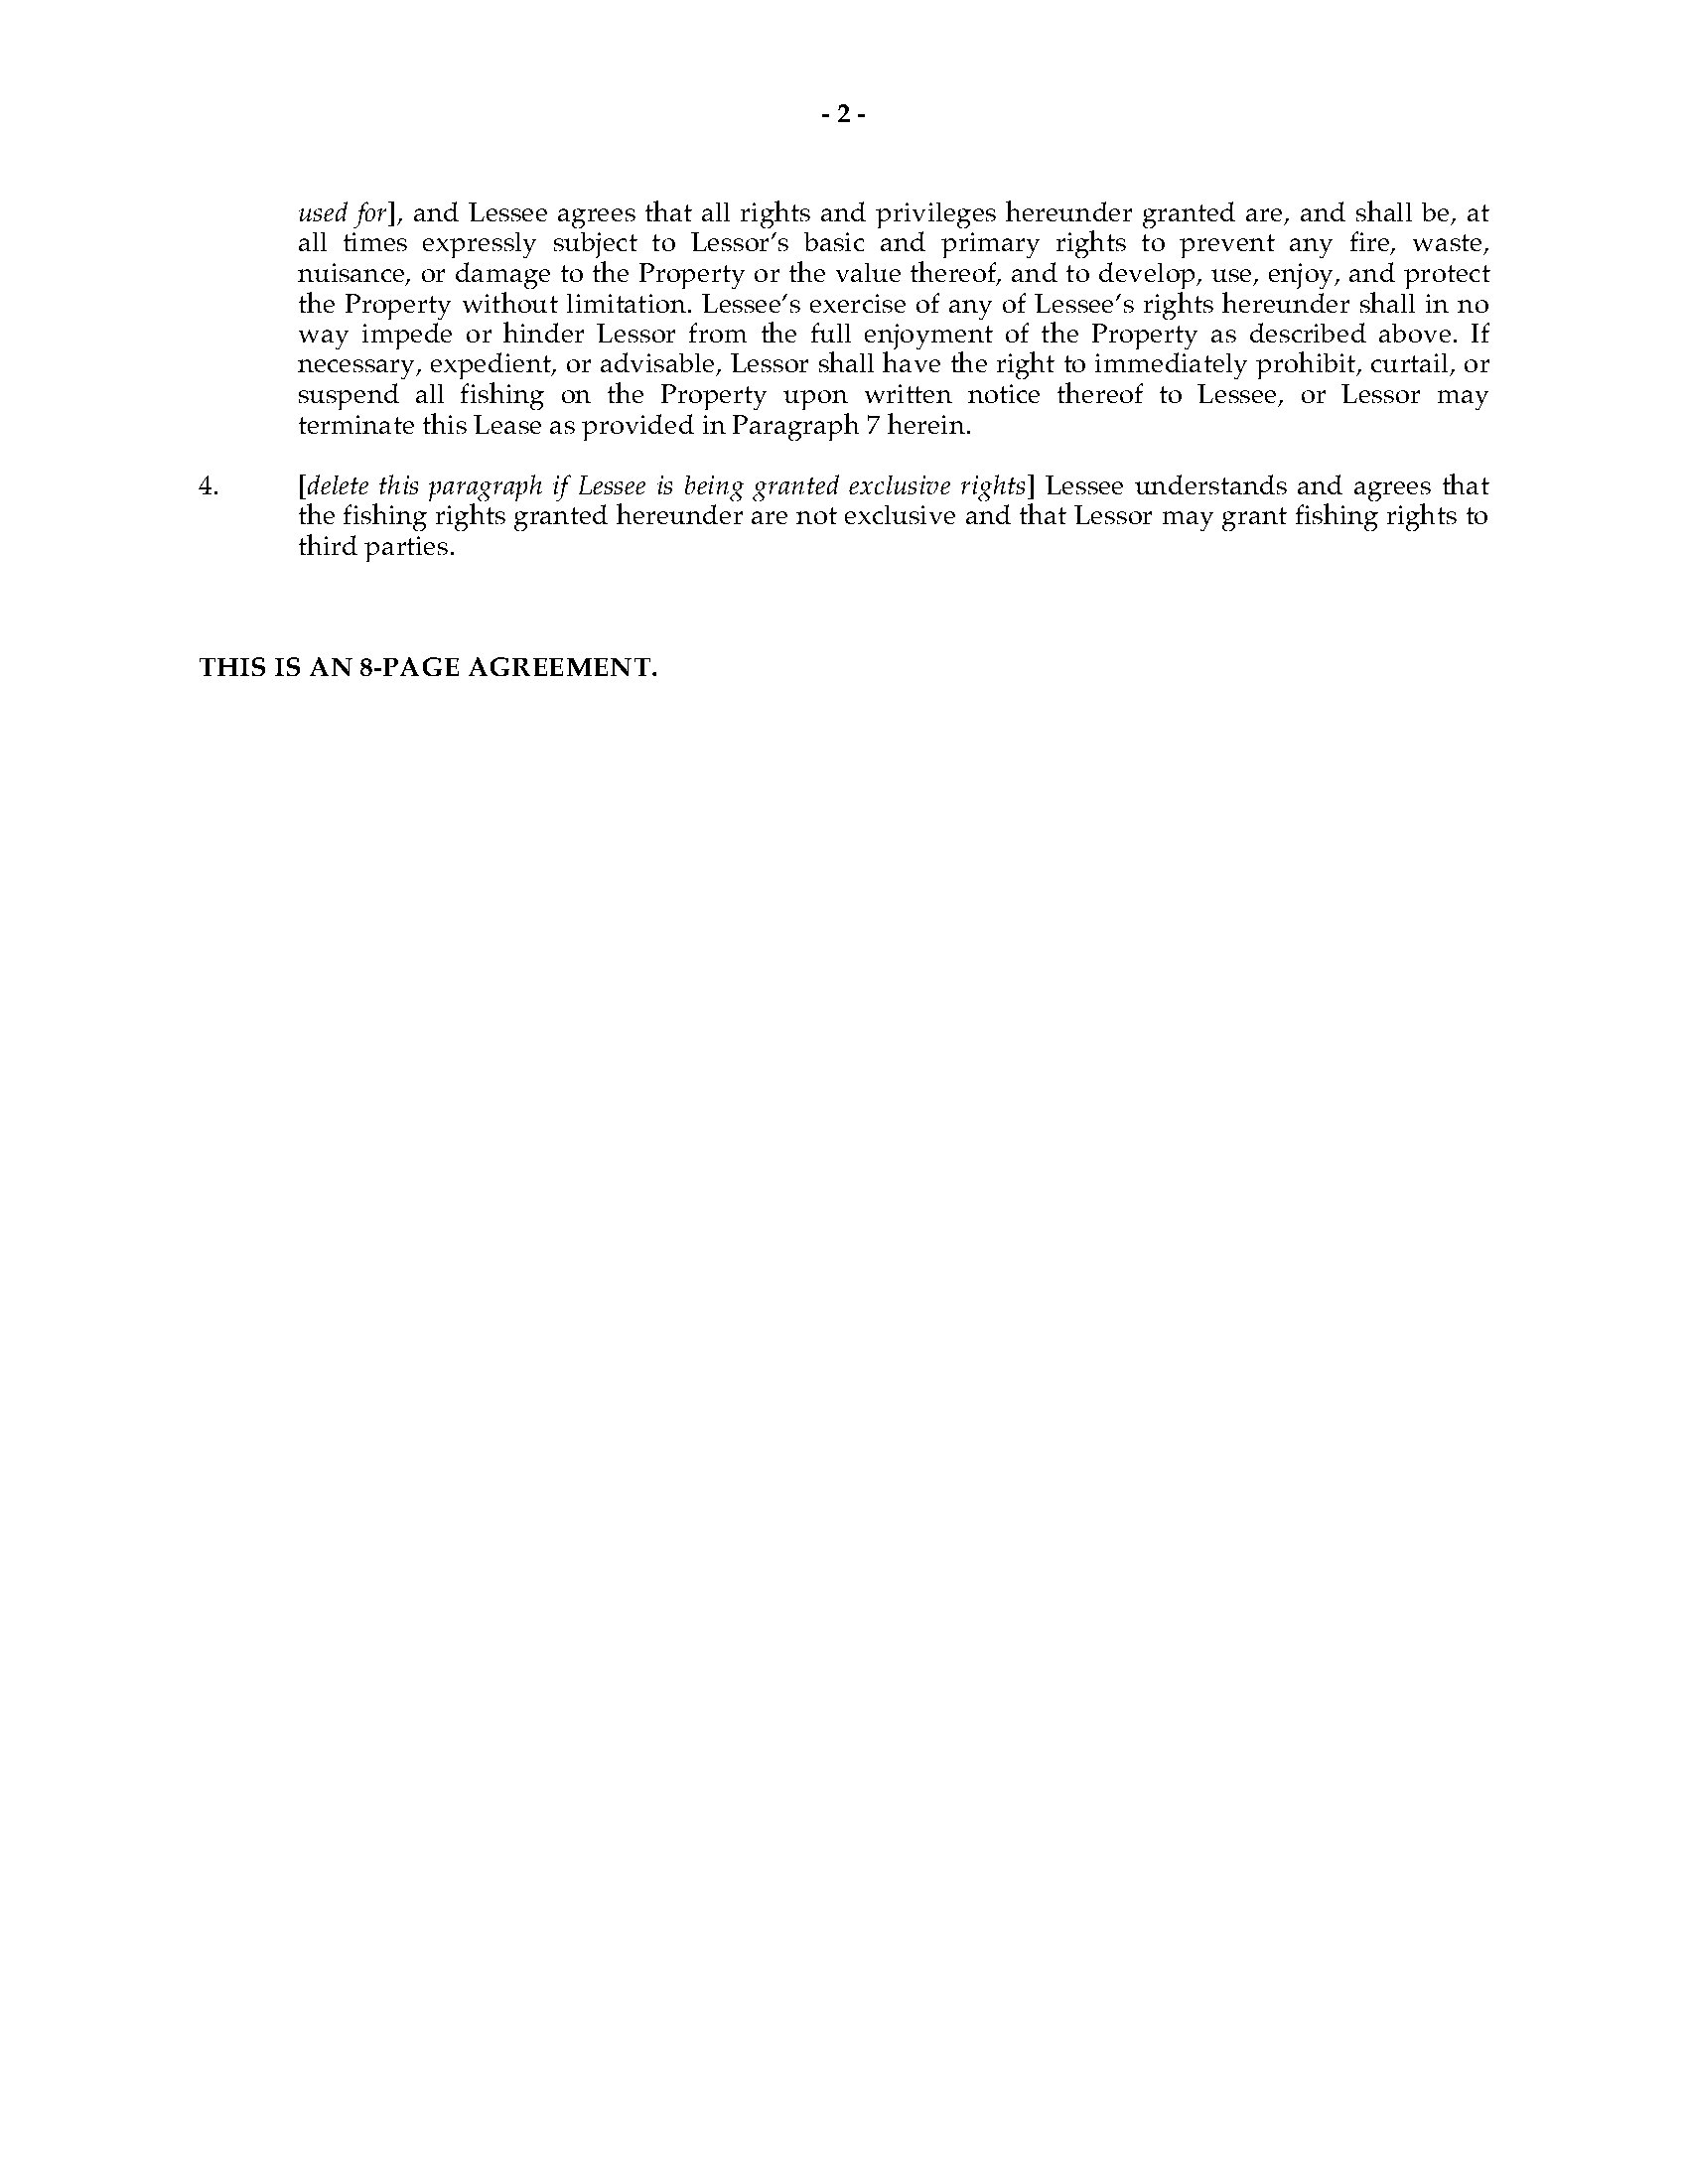 West Virginia Fishing Lease Agreement